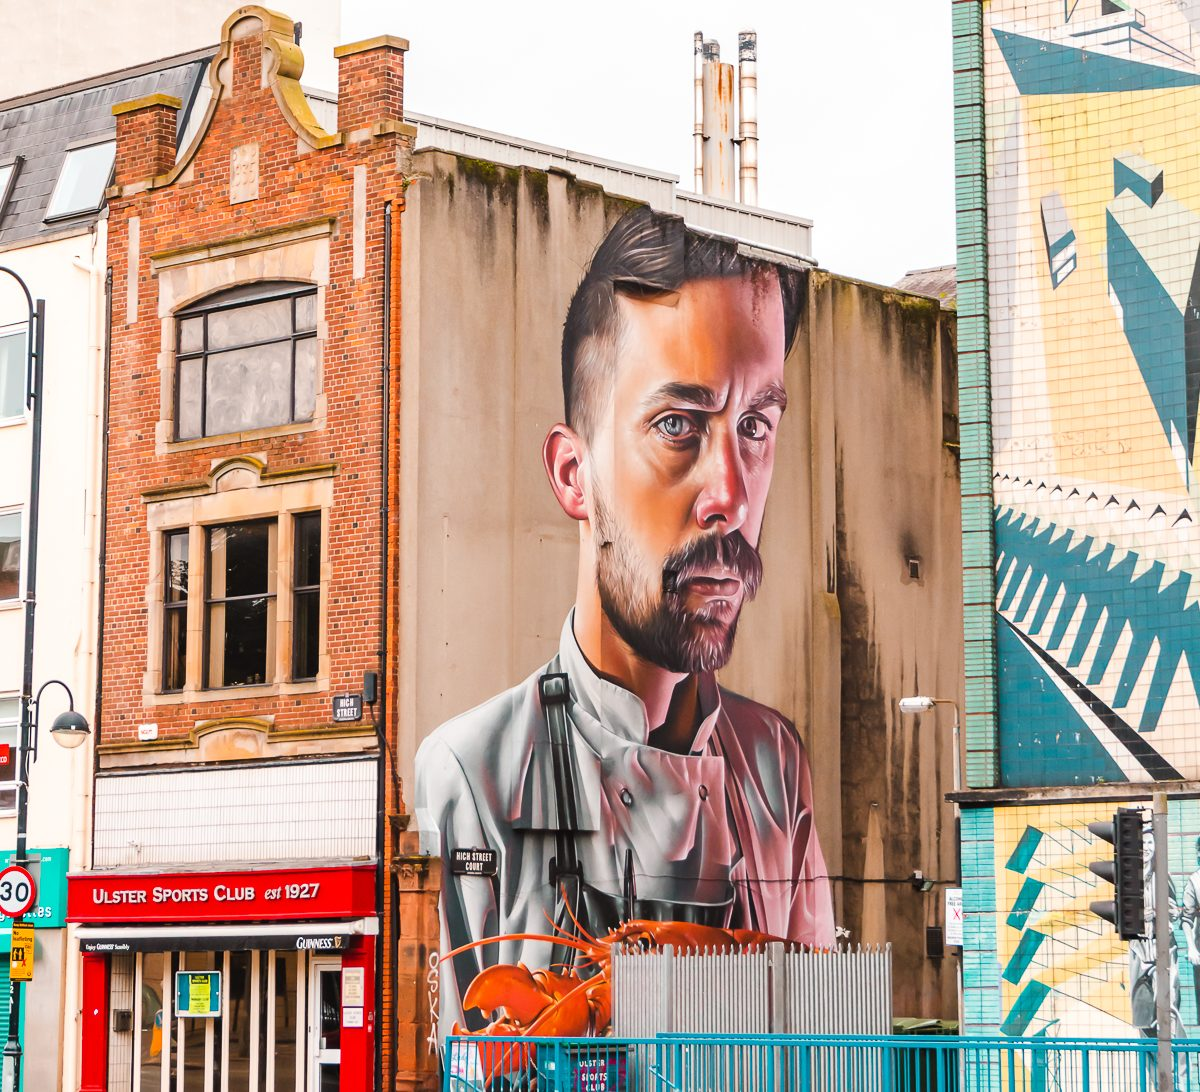 Street art in Belfast, Northern Ireland (free things to do in Belfast).